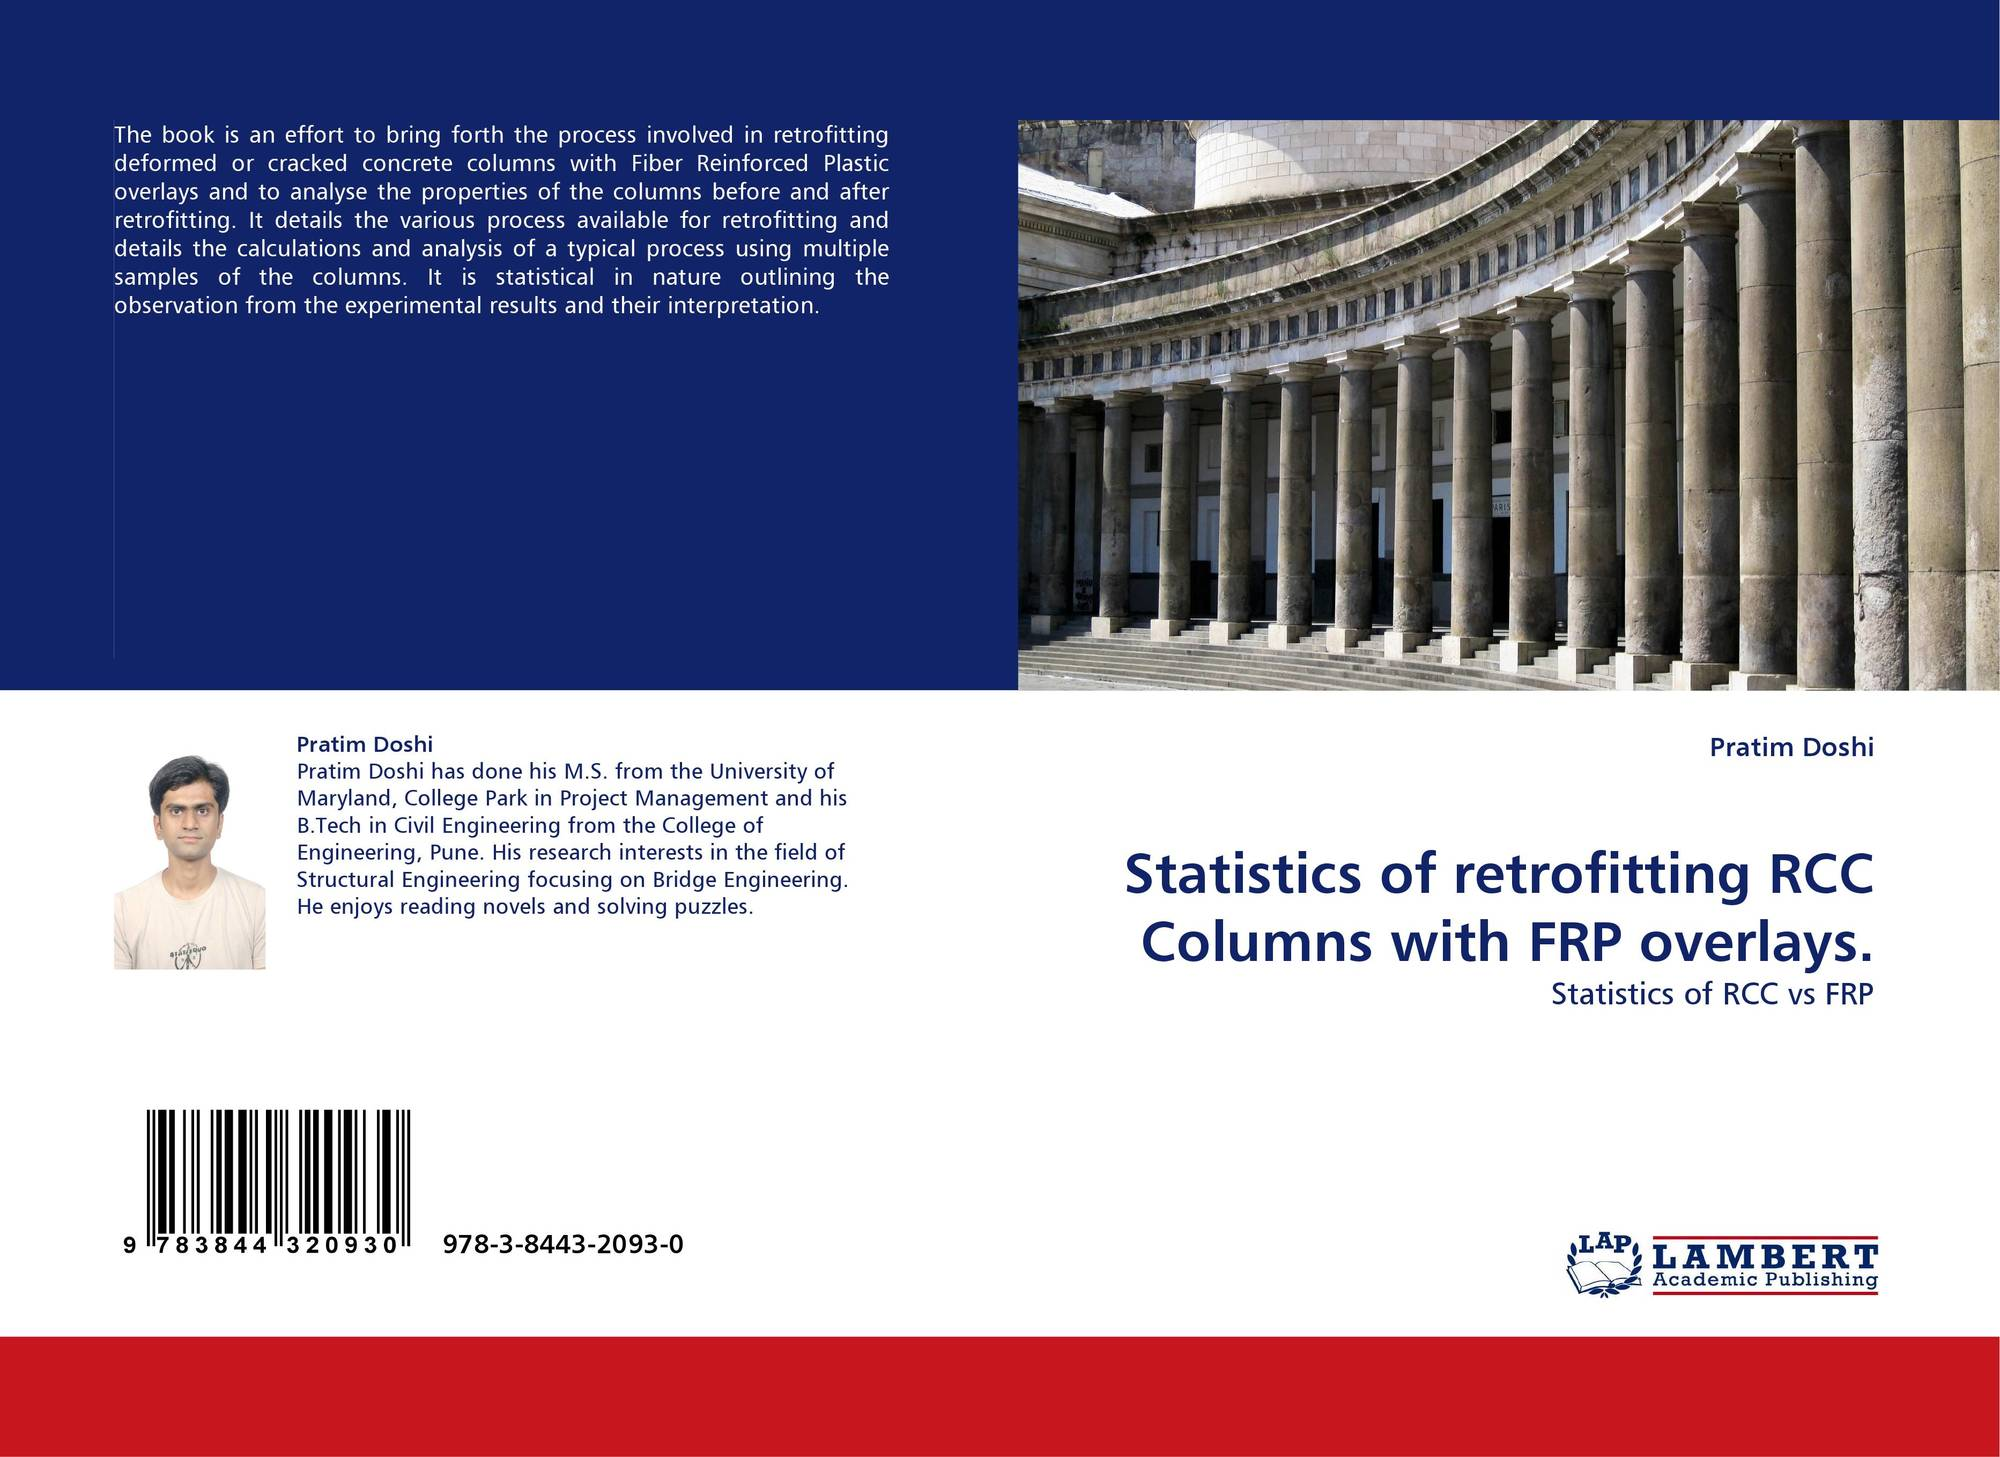 masters thesis analyse The purpose of this study was to examine master's theses completed between 2000-2008, at institutes of educational sciences of turkish state universities in terms of the types of statistical tecniques used and of the fit between statistical techniques and the data at hand a data collection instrument developed by the.